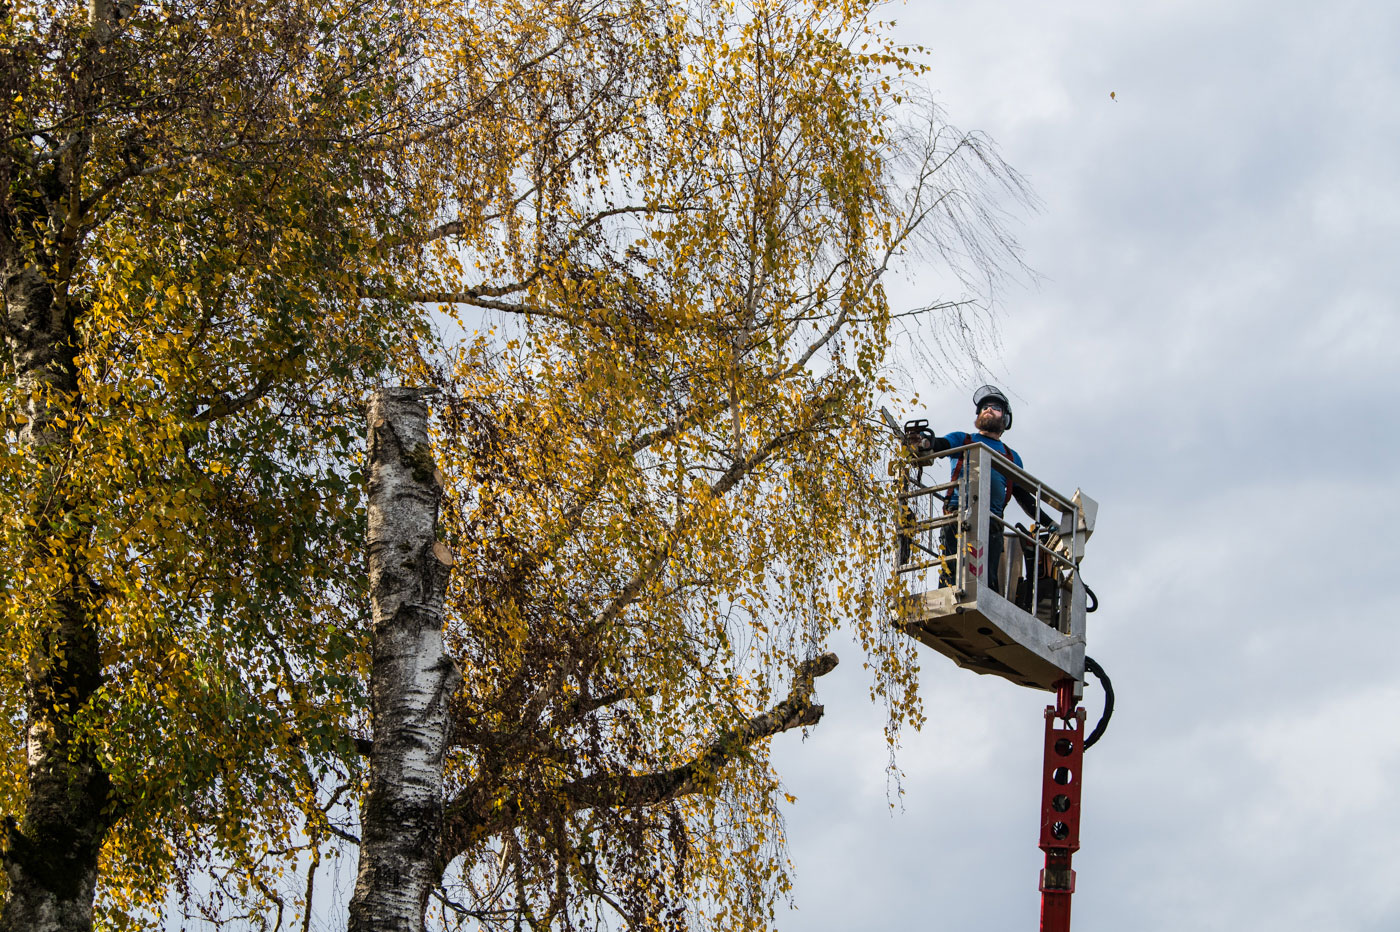 Tim Brewer Tree & Stump Service employee Derick Swain uses the spider lift to access a tree's canopy in Corvallis, Oregon.